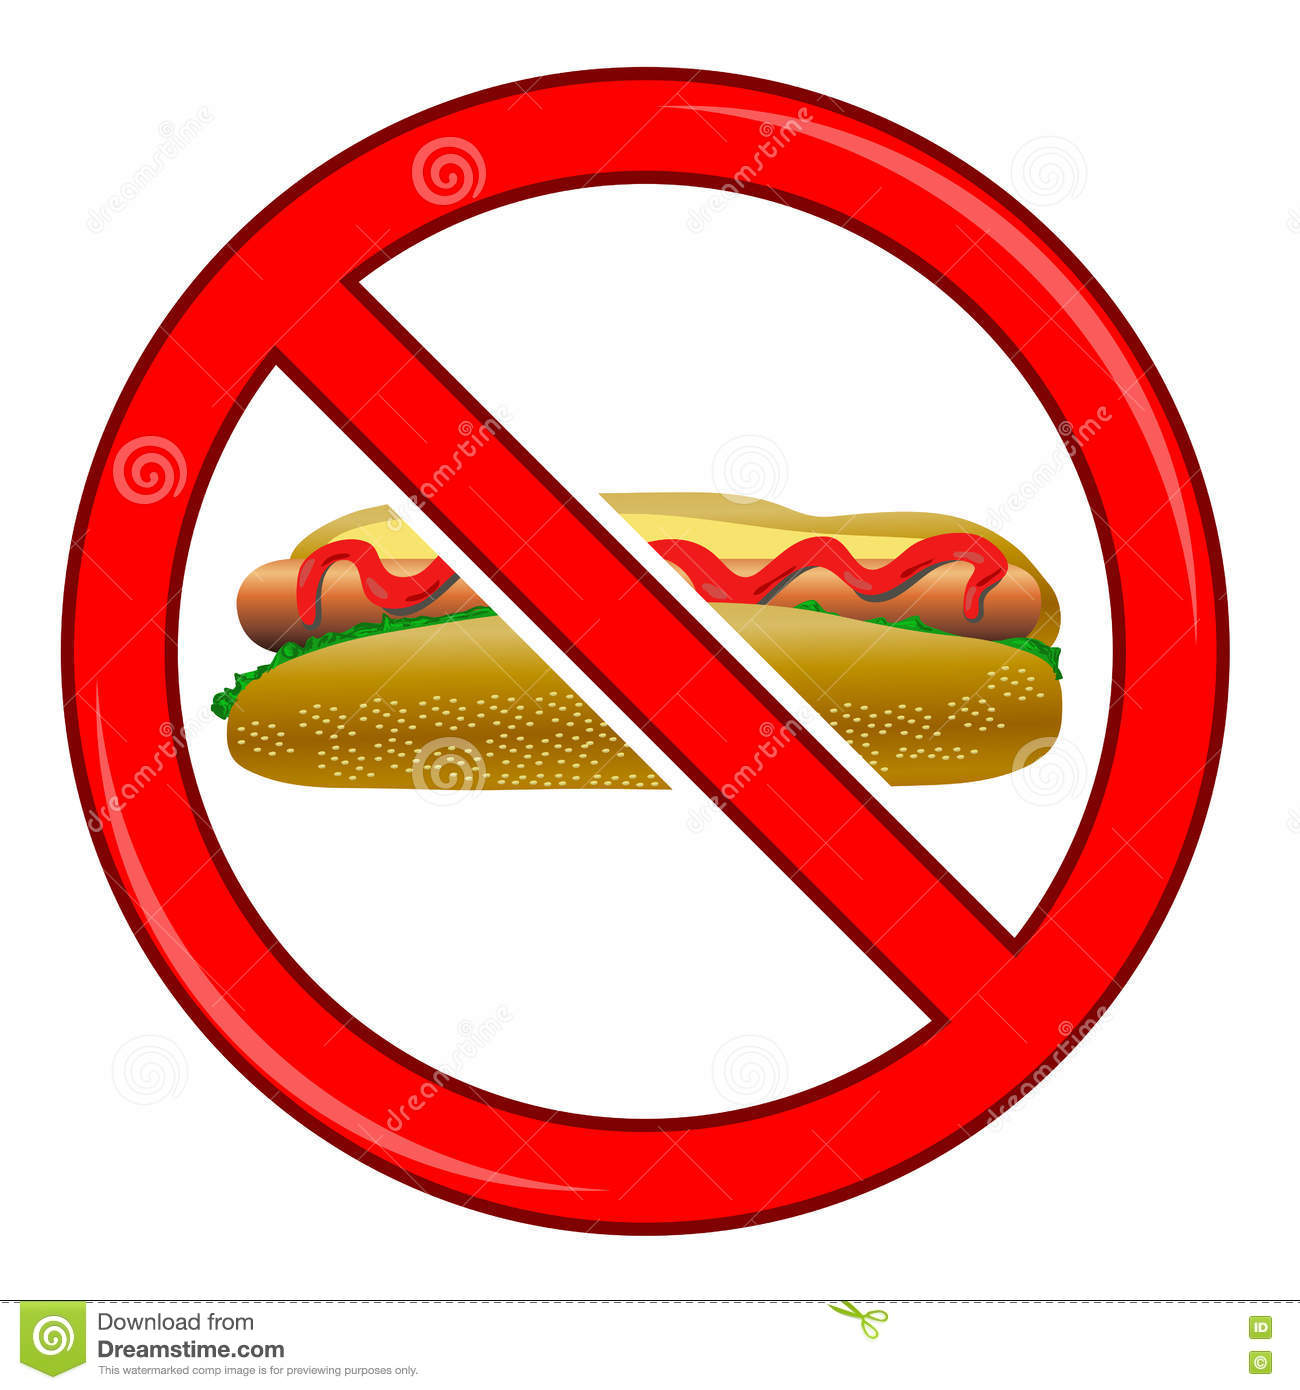 Hot Dogs Food Safety